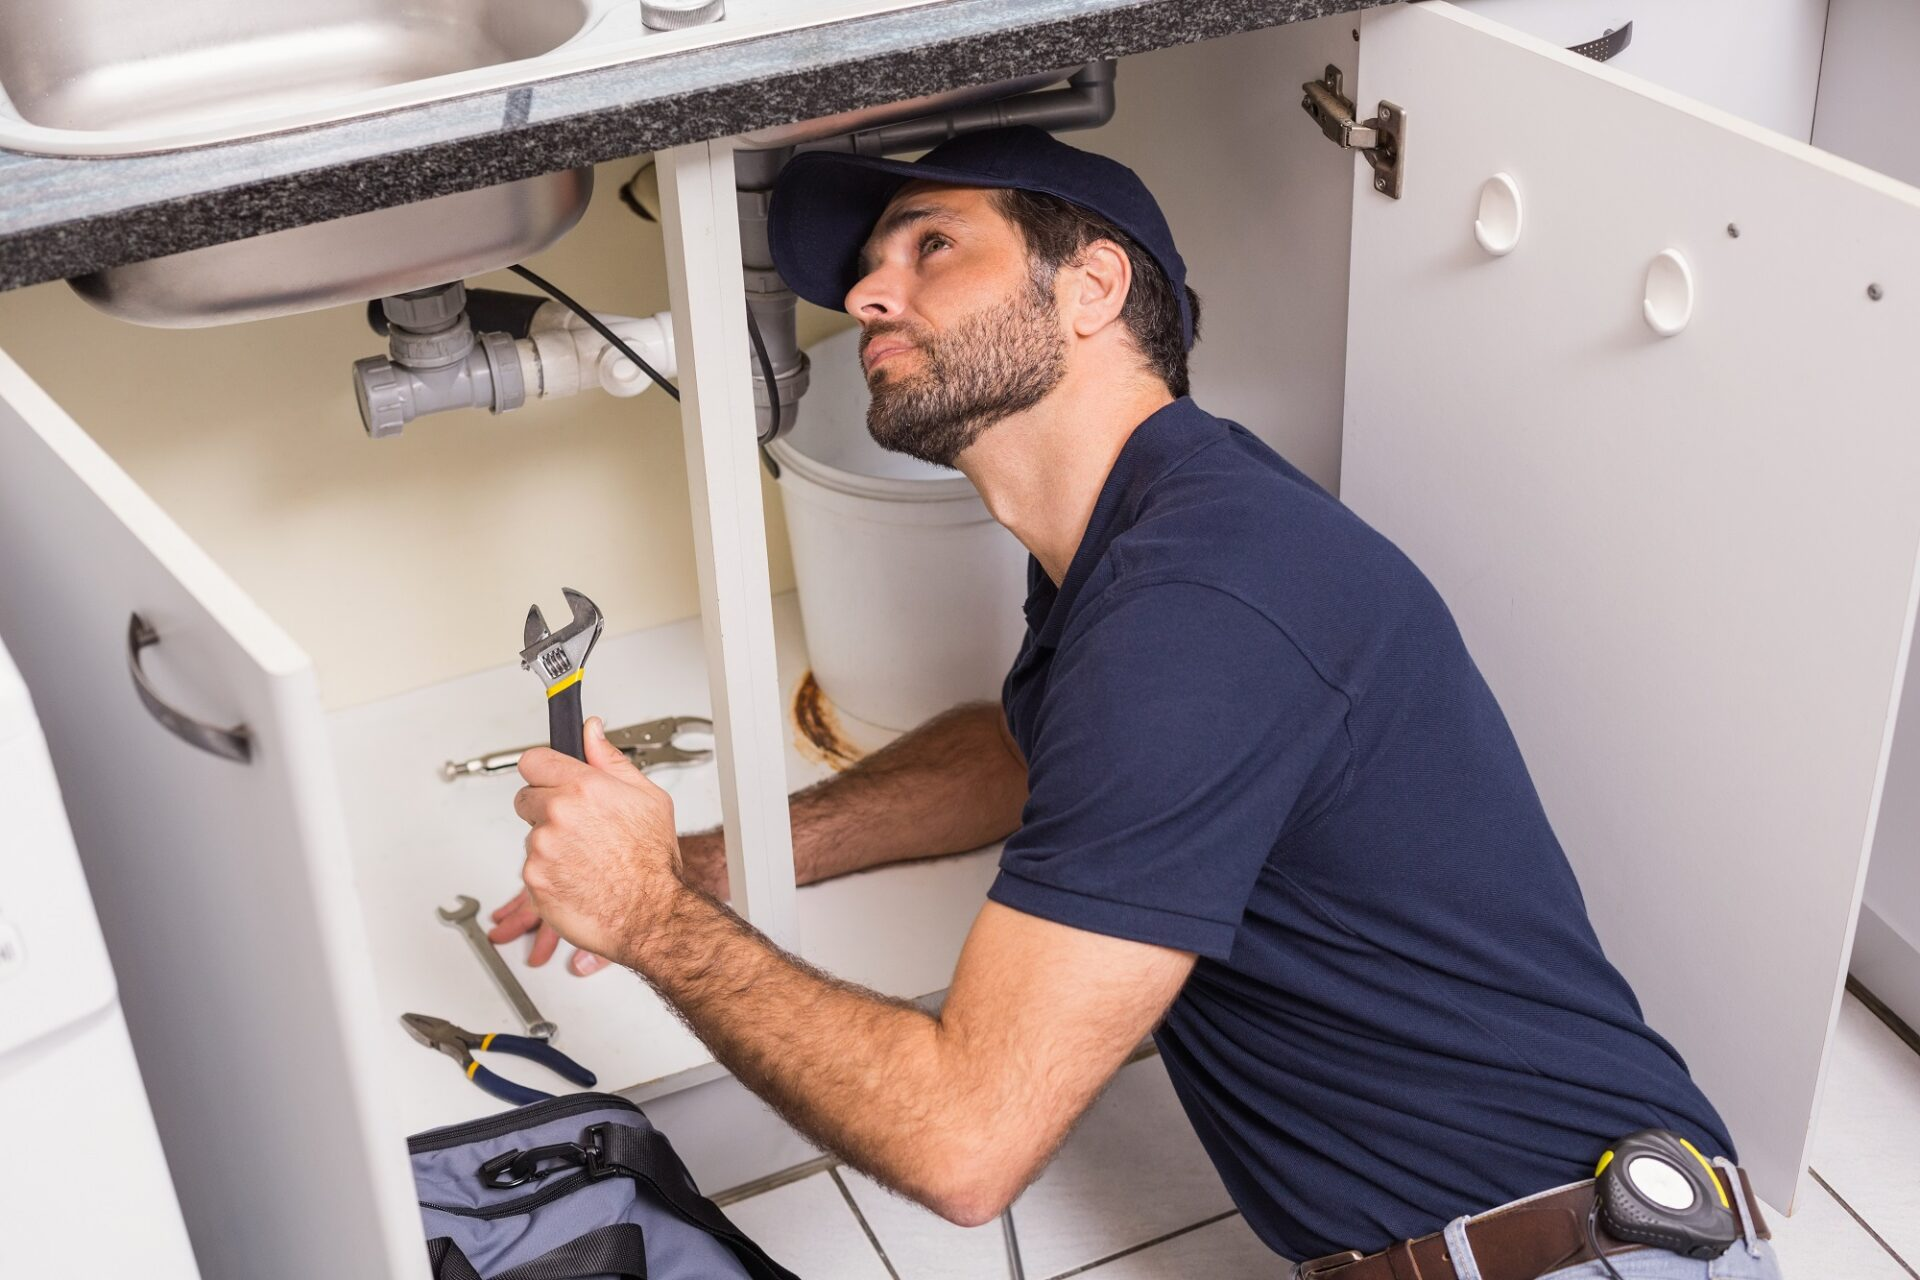 Plumbing knowledge and tools